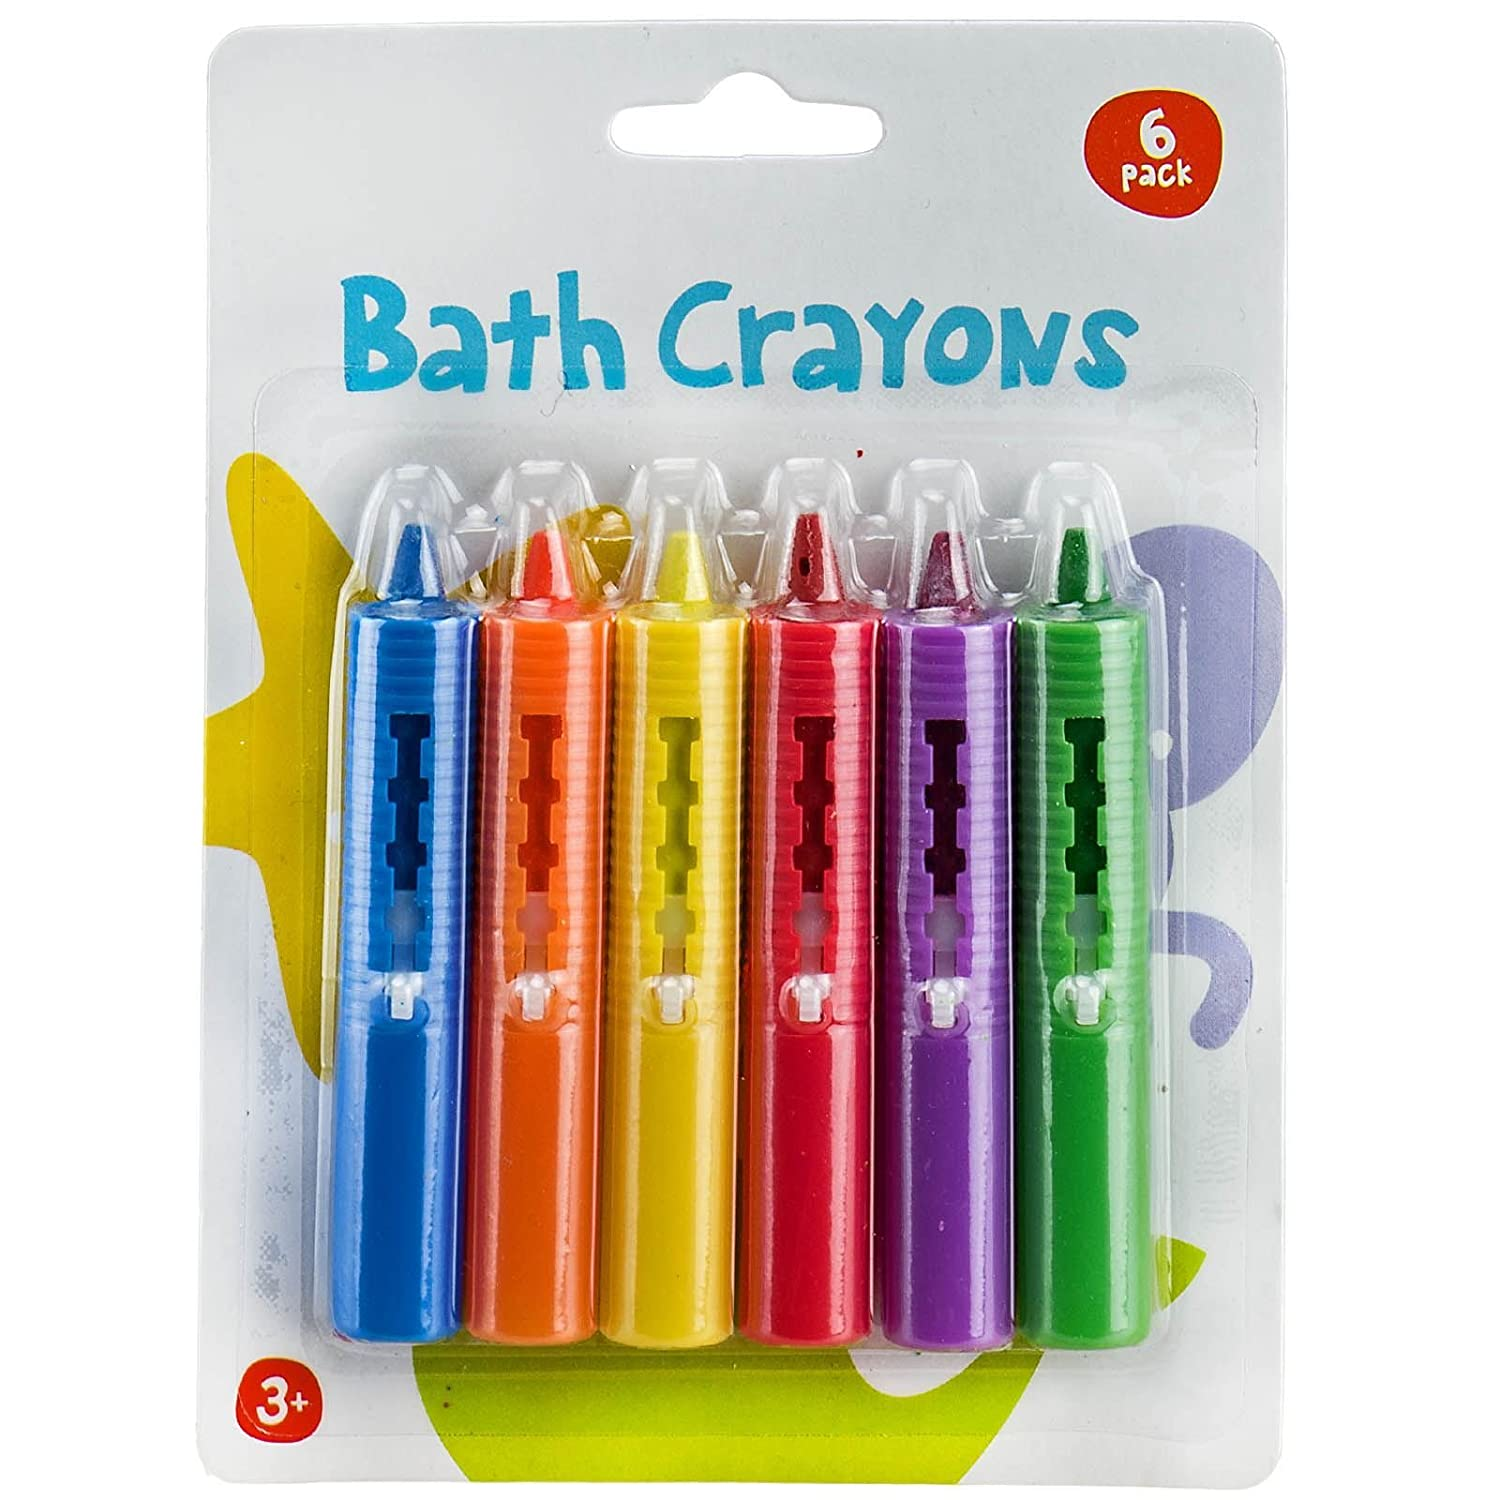 Baby Bath Crayons Non Toxic Education Fun Toy Easy Washable Wipe Clean Develop Creativity And Imagination Ages 3 Years + by Sabar U-80857